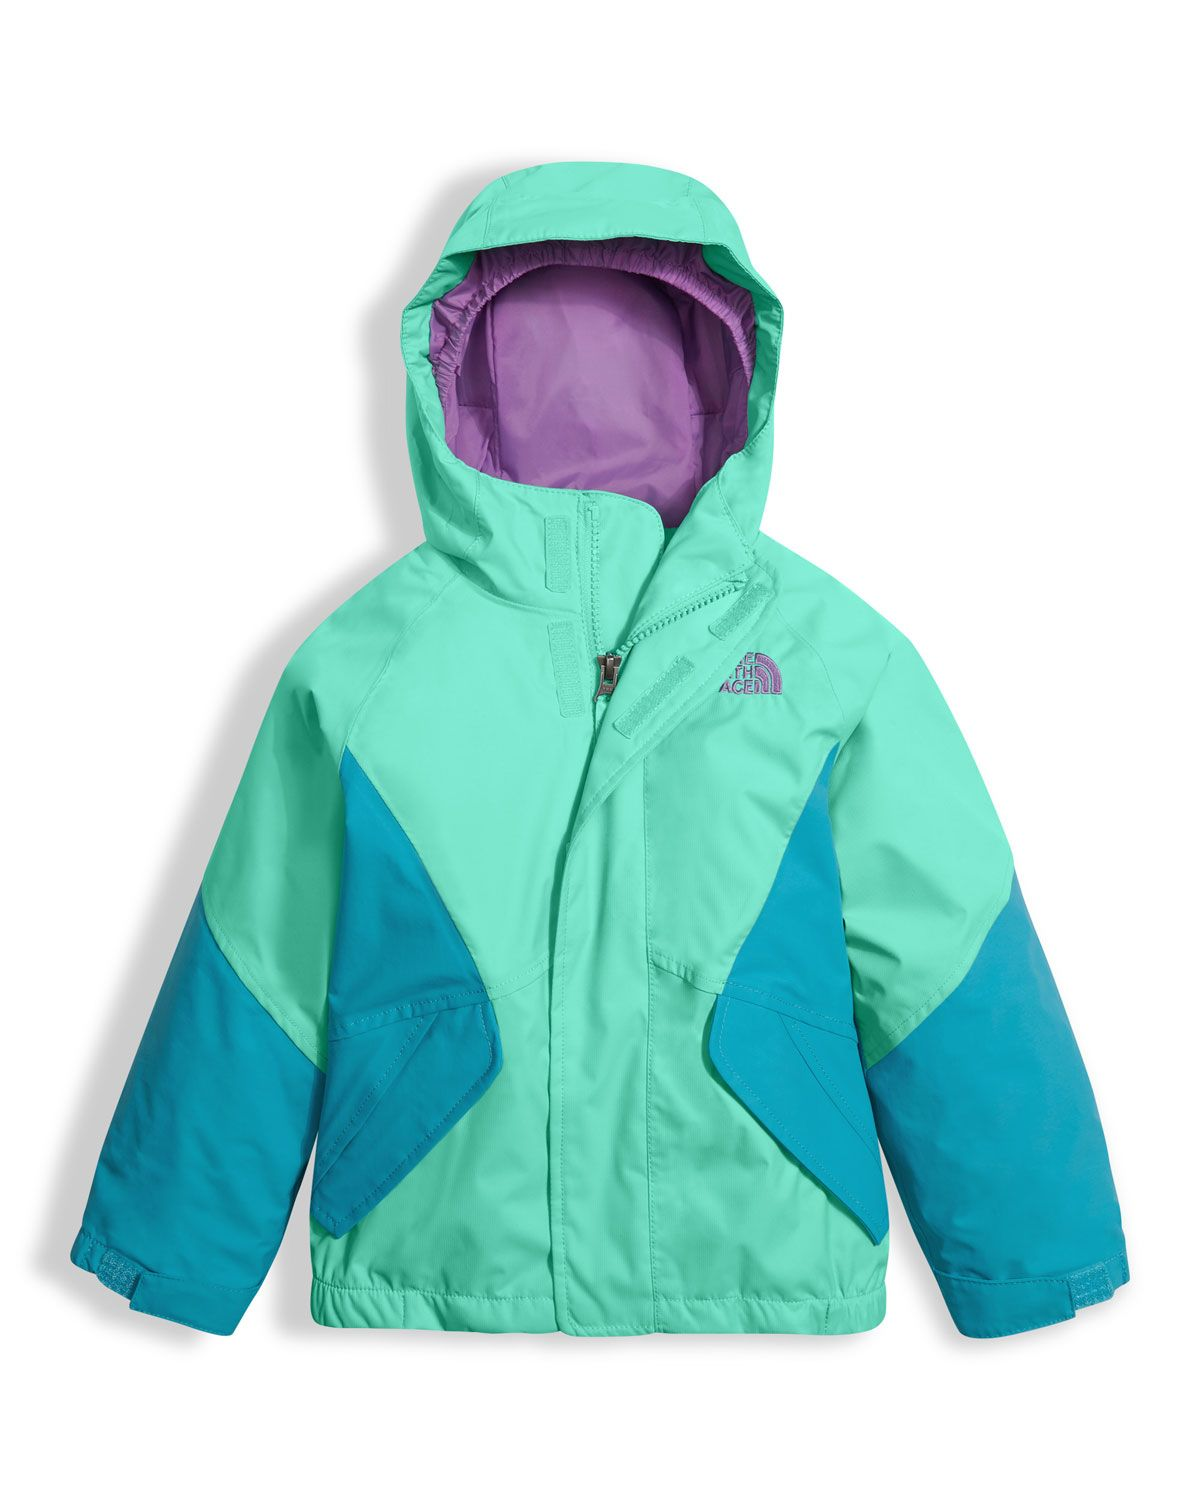 The North Face Girls Kira Triclimate Waterproof Jacket Green Size 2 4t Thenorthface Cloth Triclimate Jacket North Face Girls Waterproof Jacket [ 1500 x 1200 Pixel ]